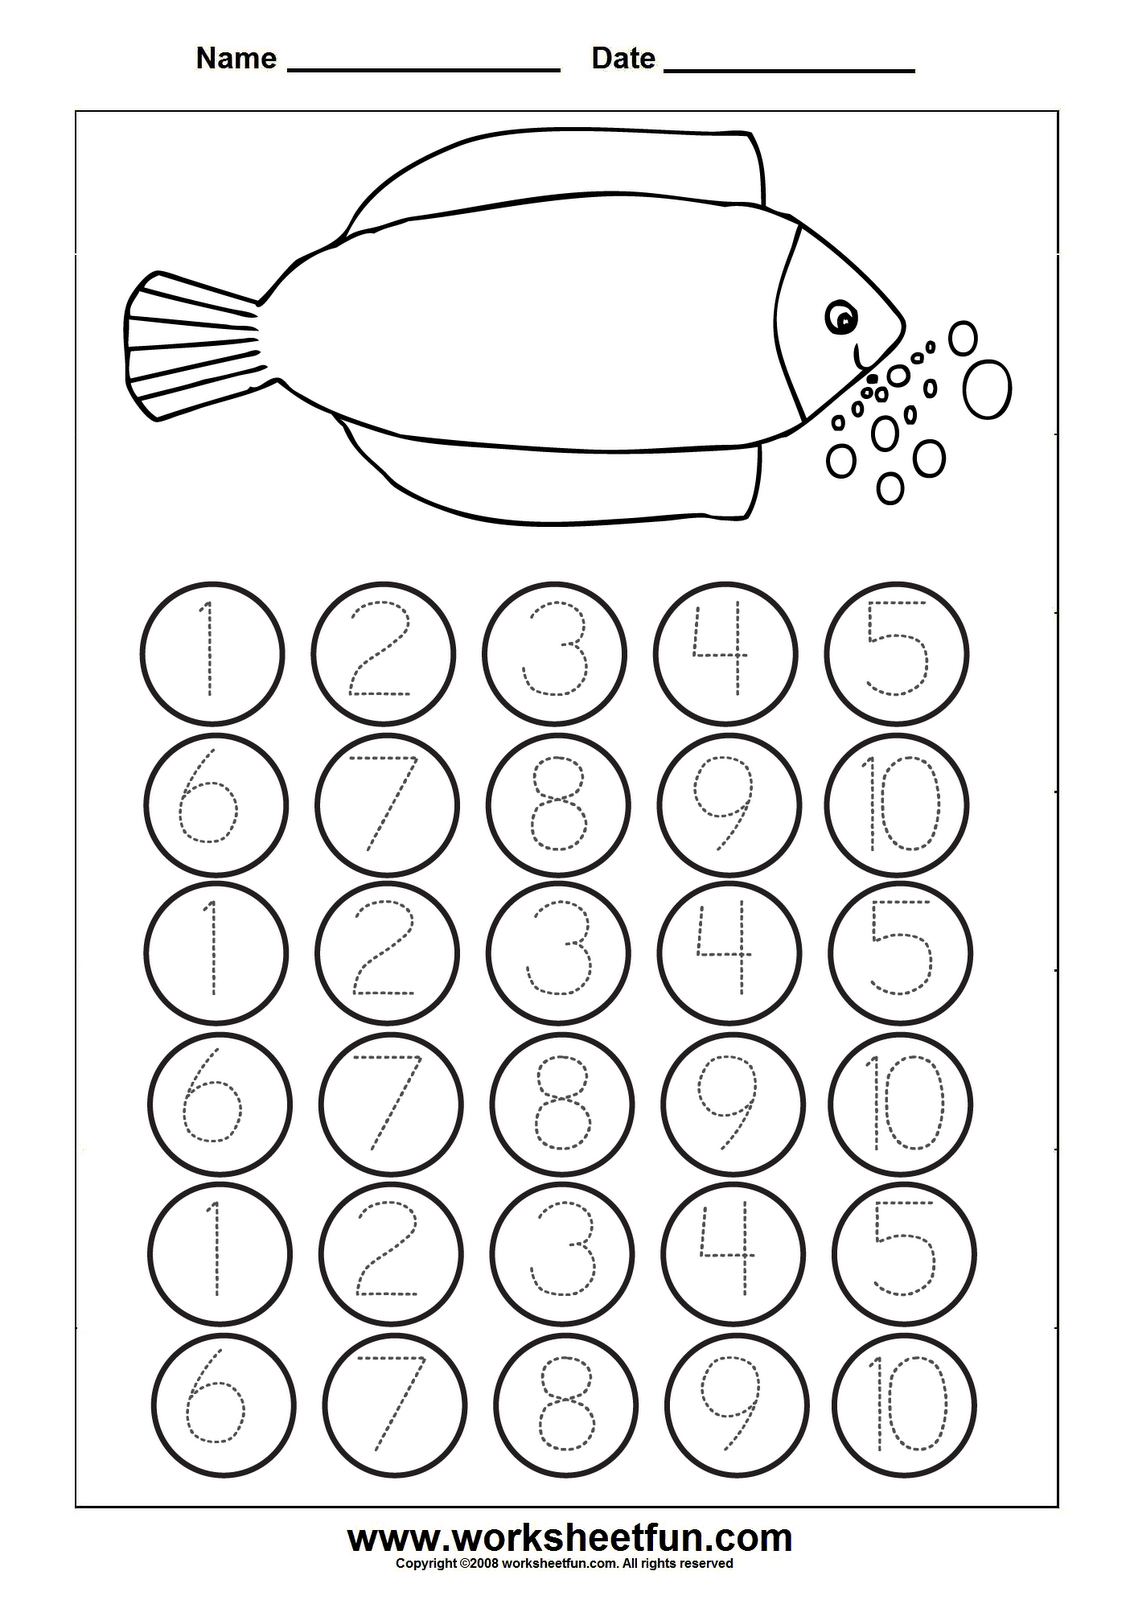 Worksheets Printable Number Worksheets tracing worksheets 3 worksheet 1 to 5 math we will learn this week counting from write the numbers ordinal addition and subtraction printable worksheets